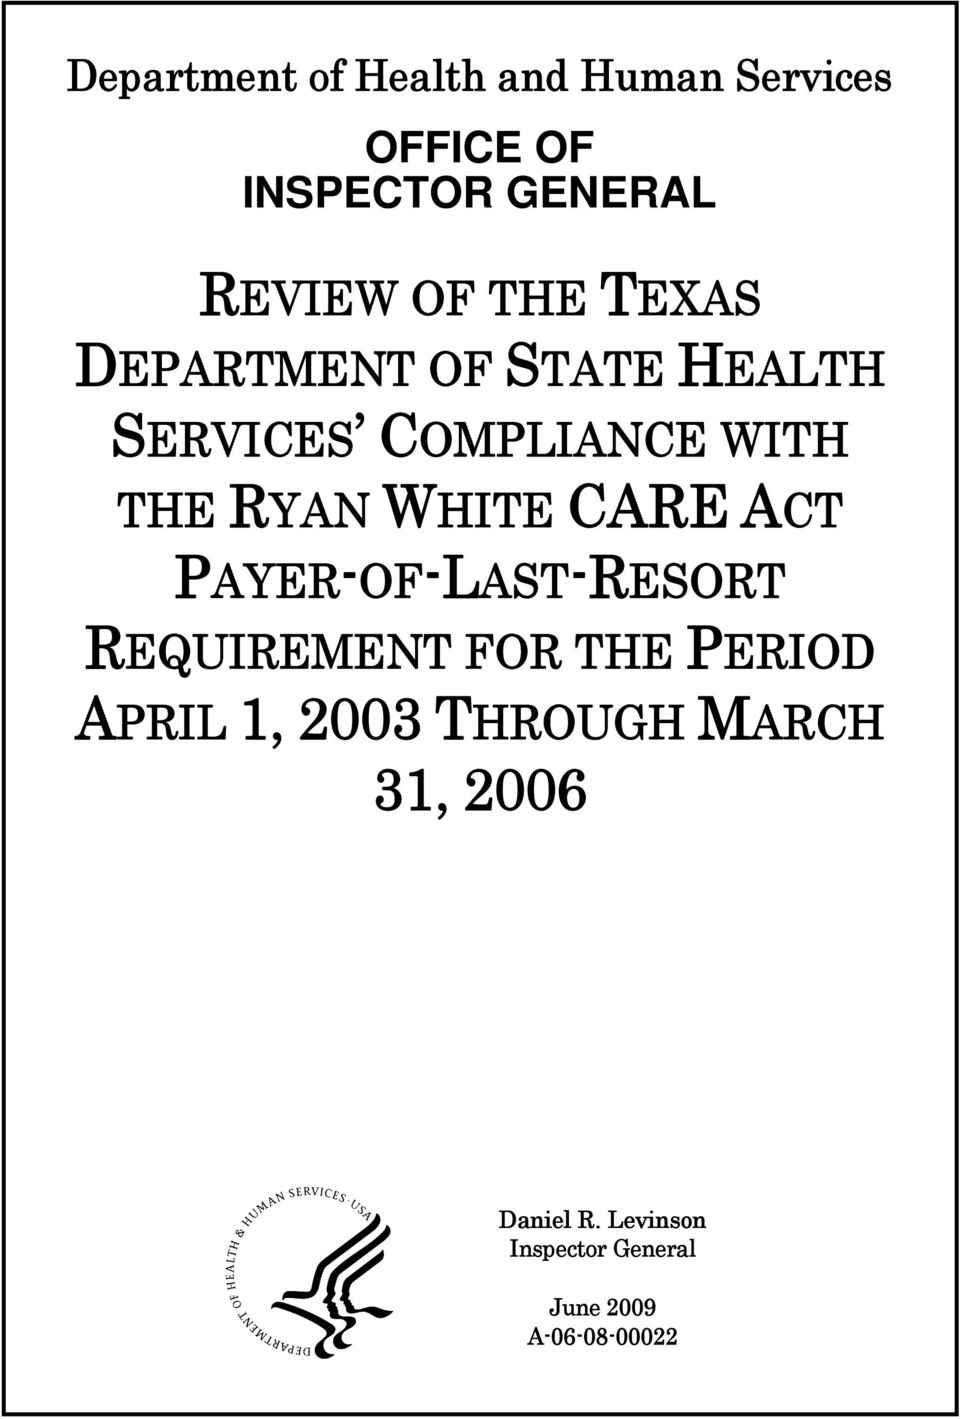 CARE ACT PAYER-OF-LAST-RESORT REQUIREMENT FOR THE PERIOD APRIL 1, 2003